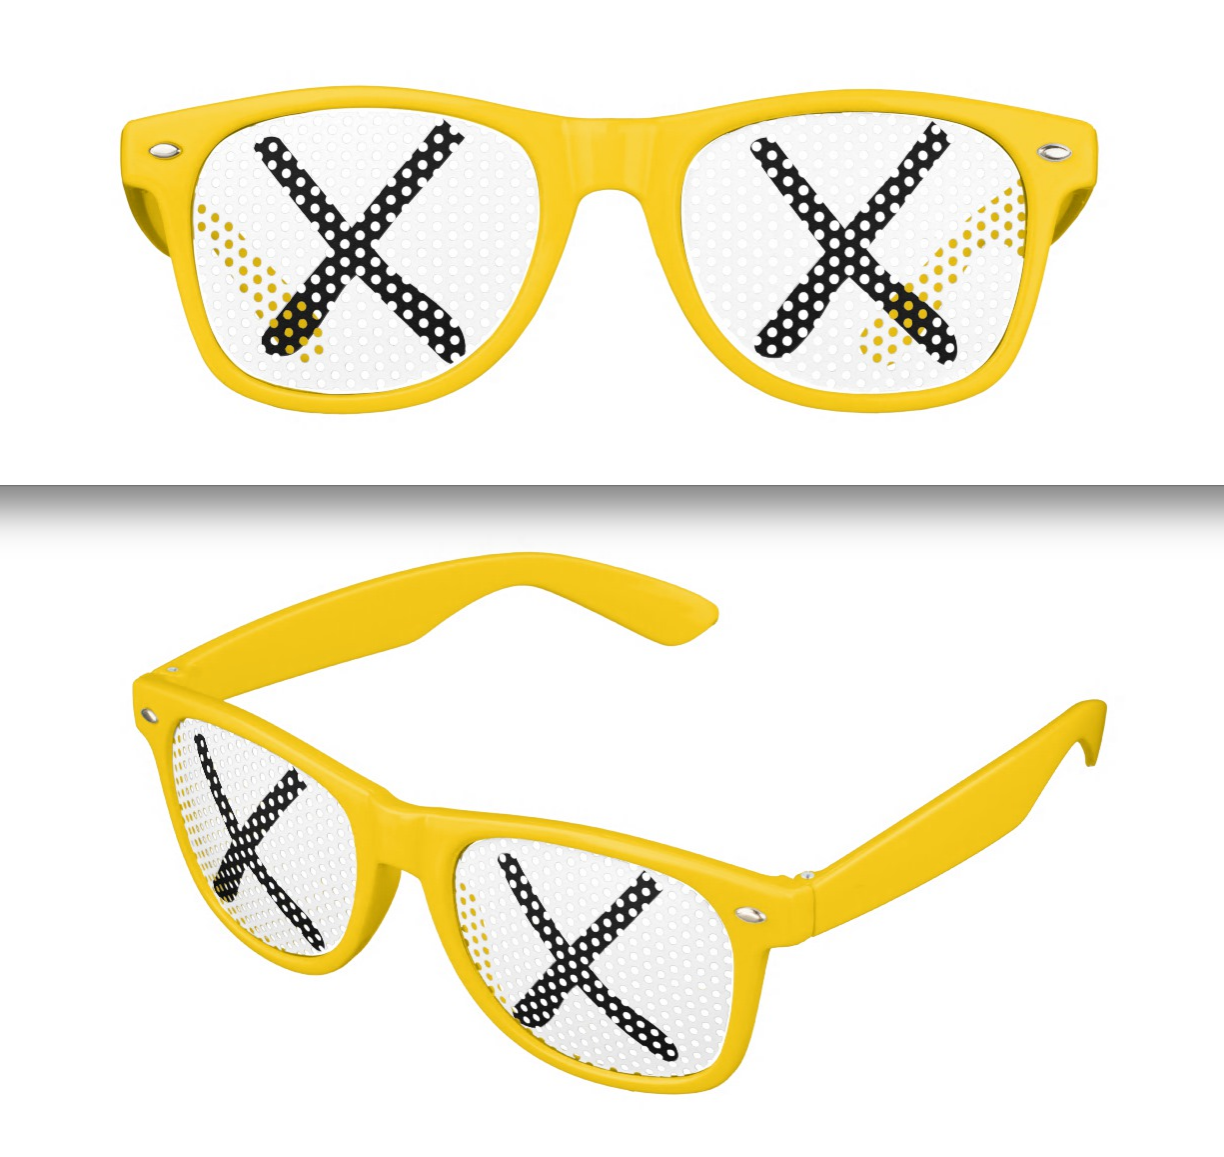 xx eyes crossed out eyes sunglasses yellow homer. Black Bedroom Furniture Sets. Home Design Ideas